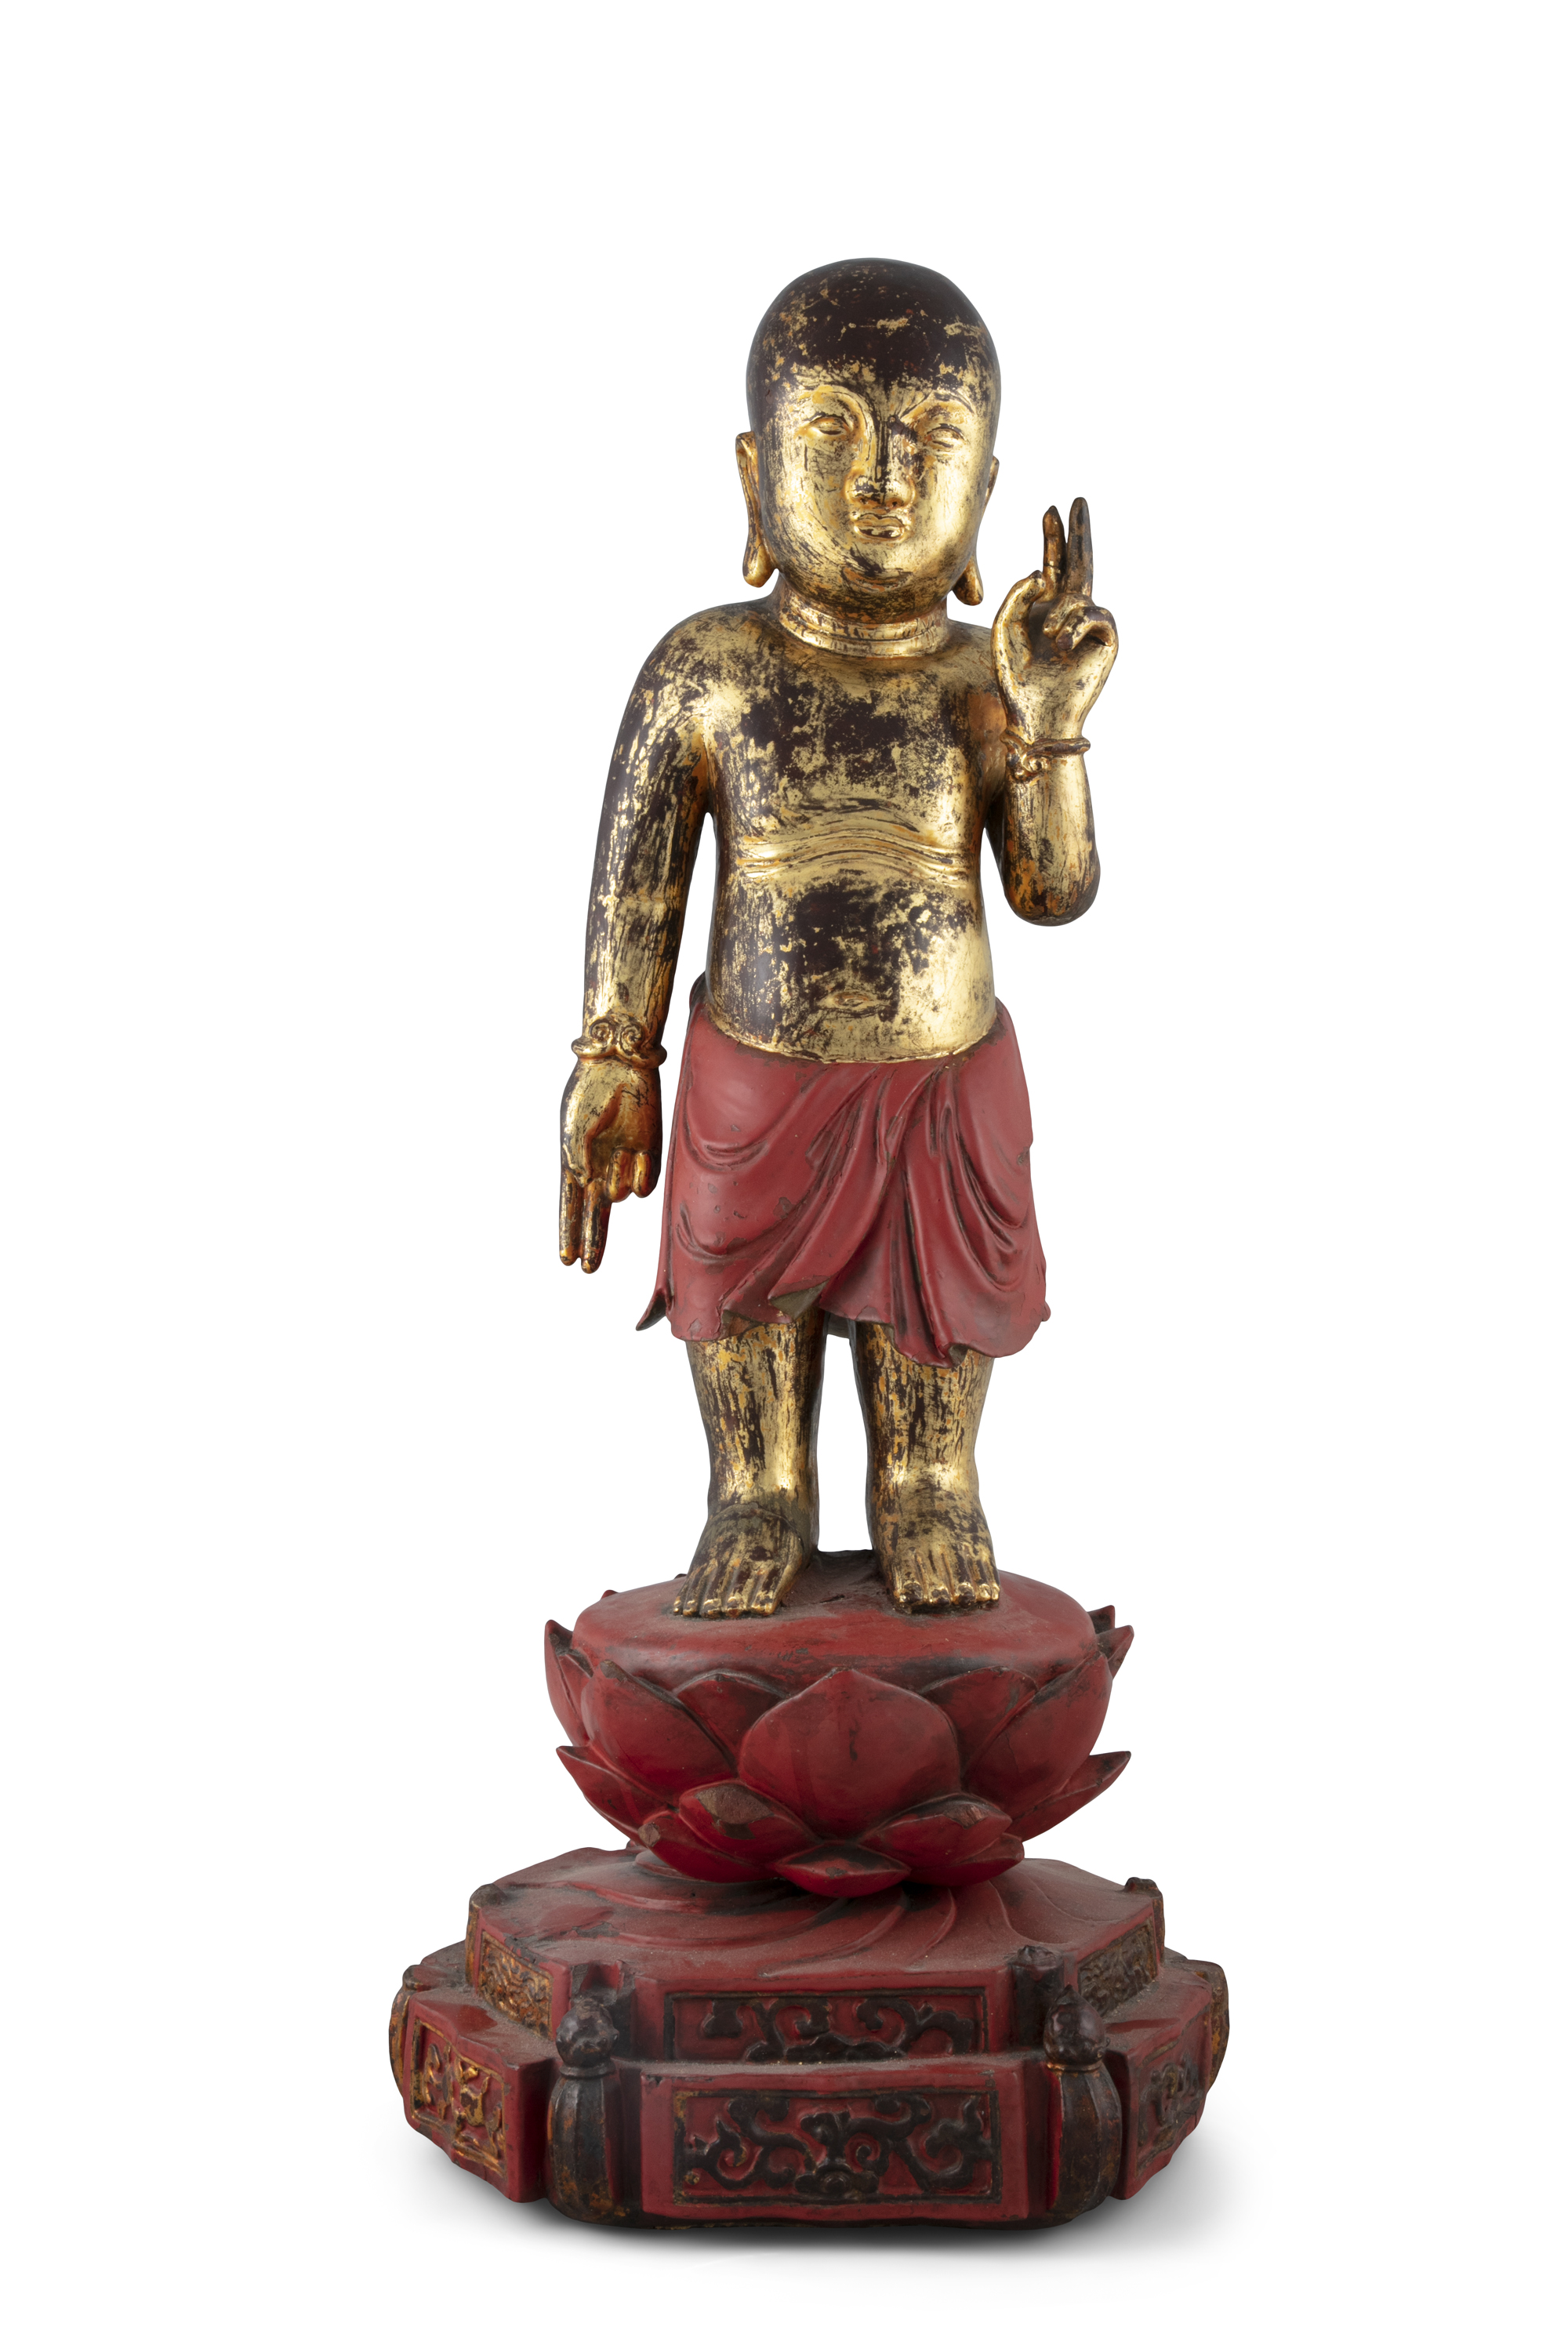 A LARGE GILT-LACQUERED WOODEN SCULPTURE OF THE STANDING INFANT BUDDHA China, Qing Dynasty (or - Image 5 of 20